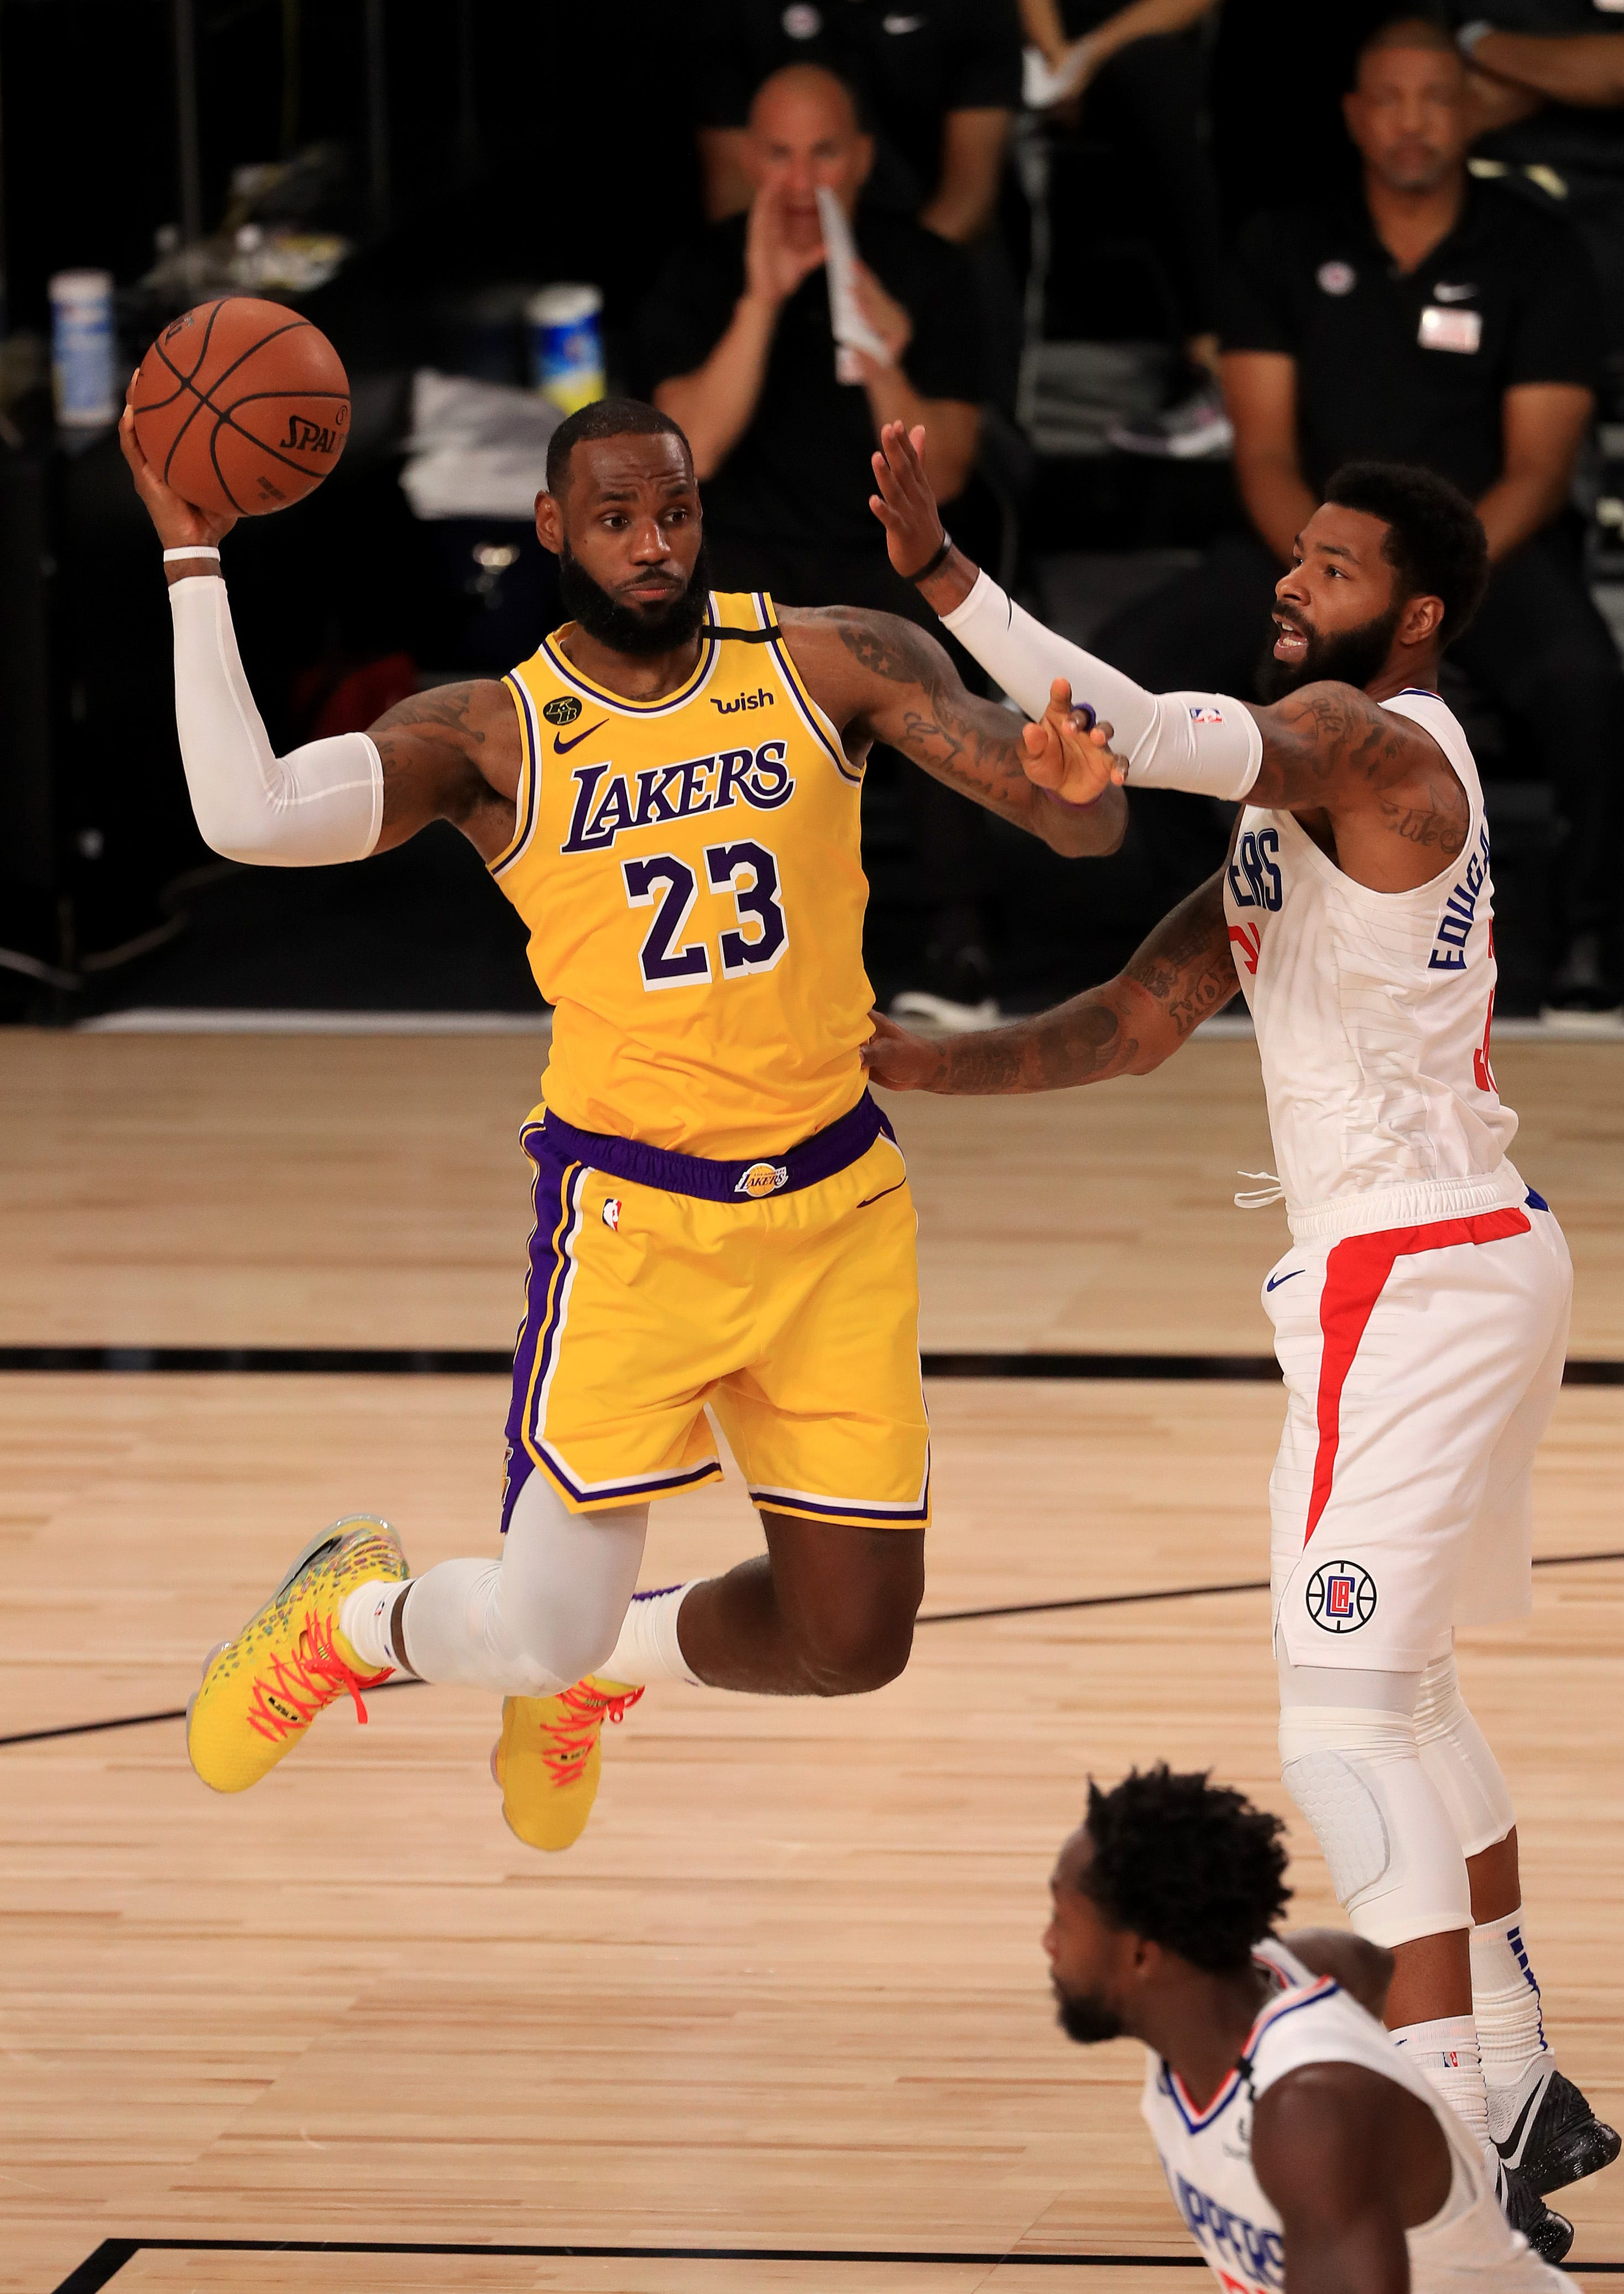 Opinion: Lakers-Clippers game shows grind-it-out mentality will likely determine NBA champion